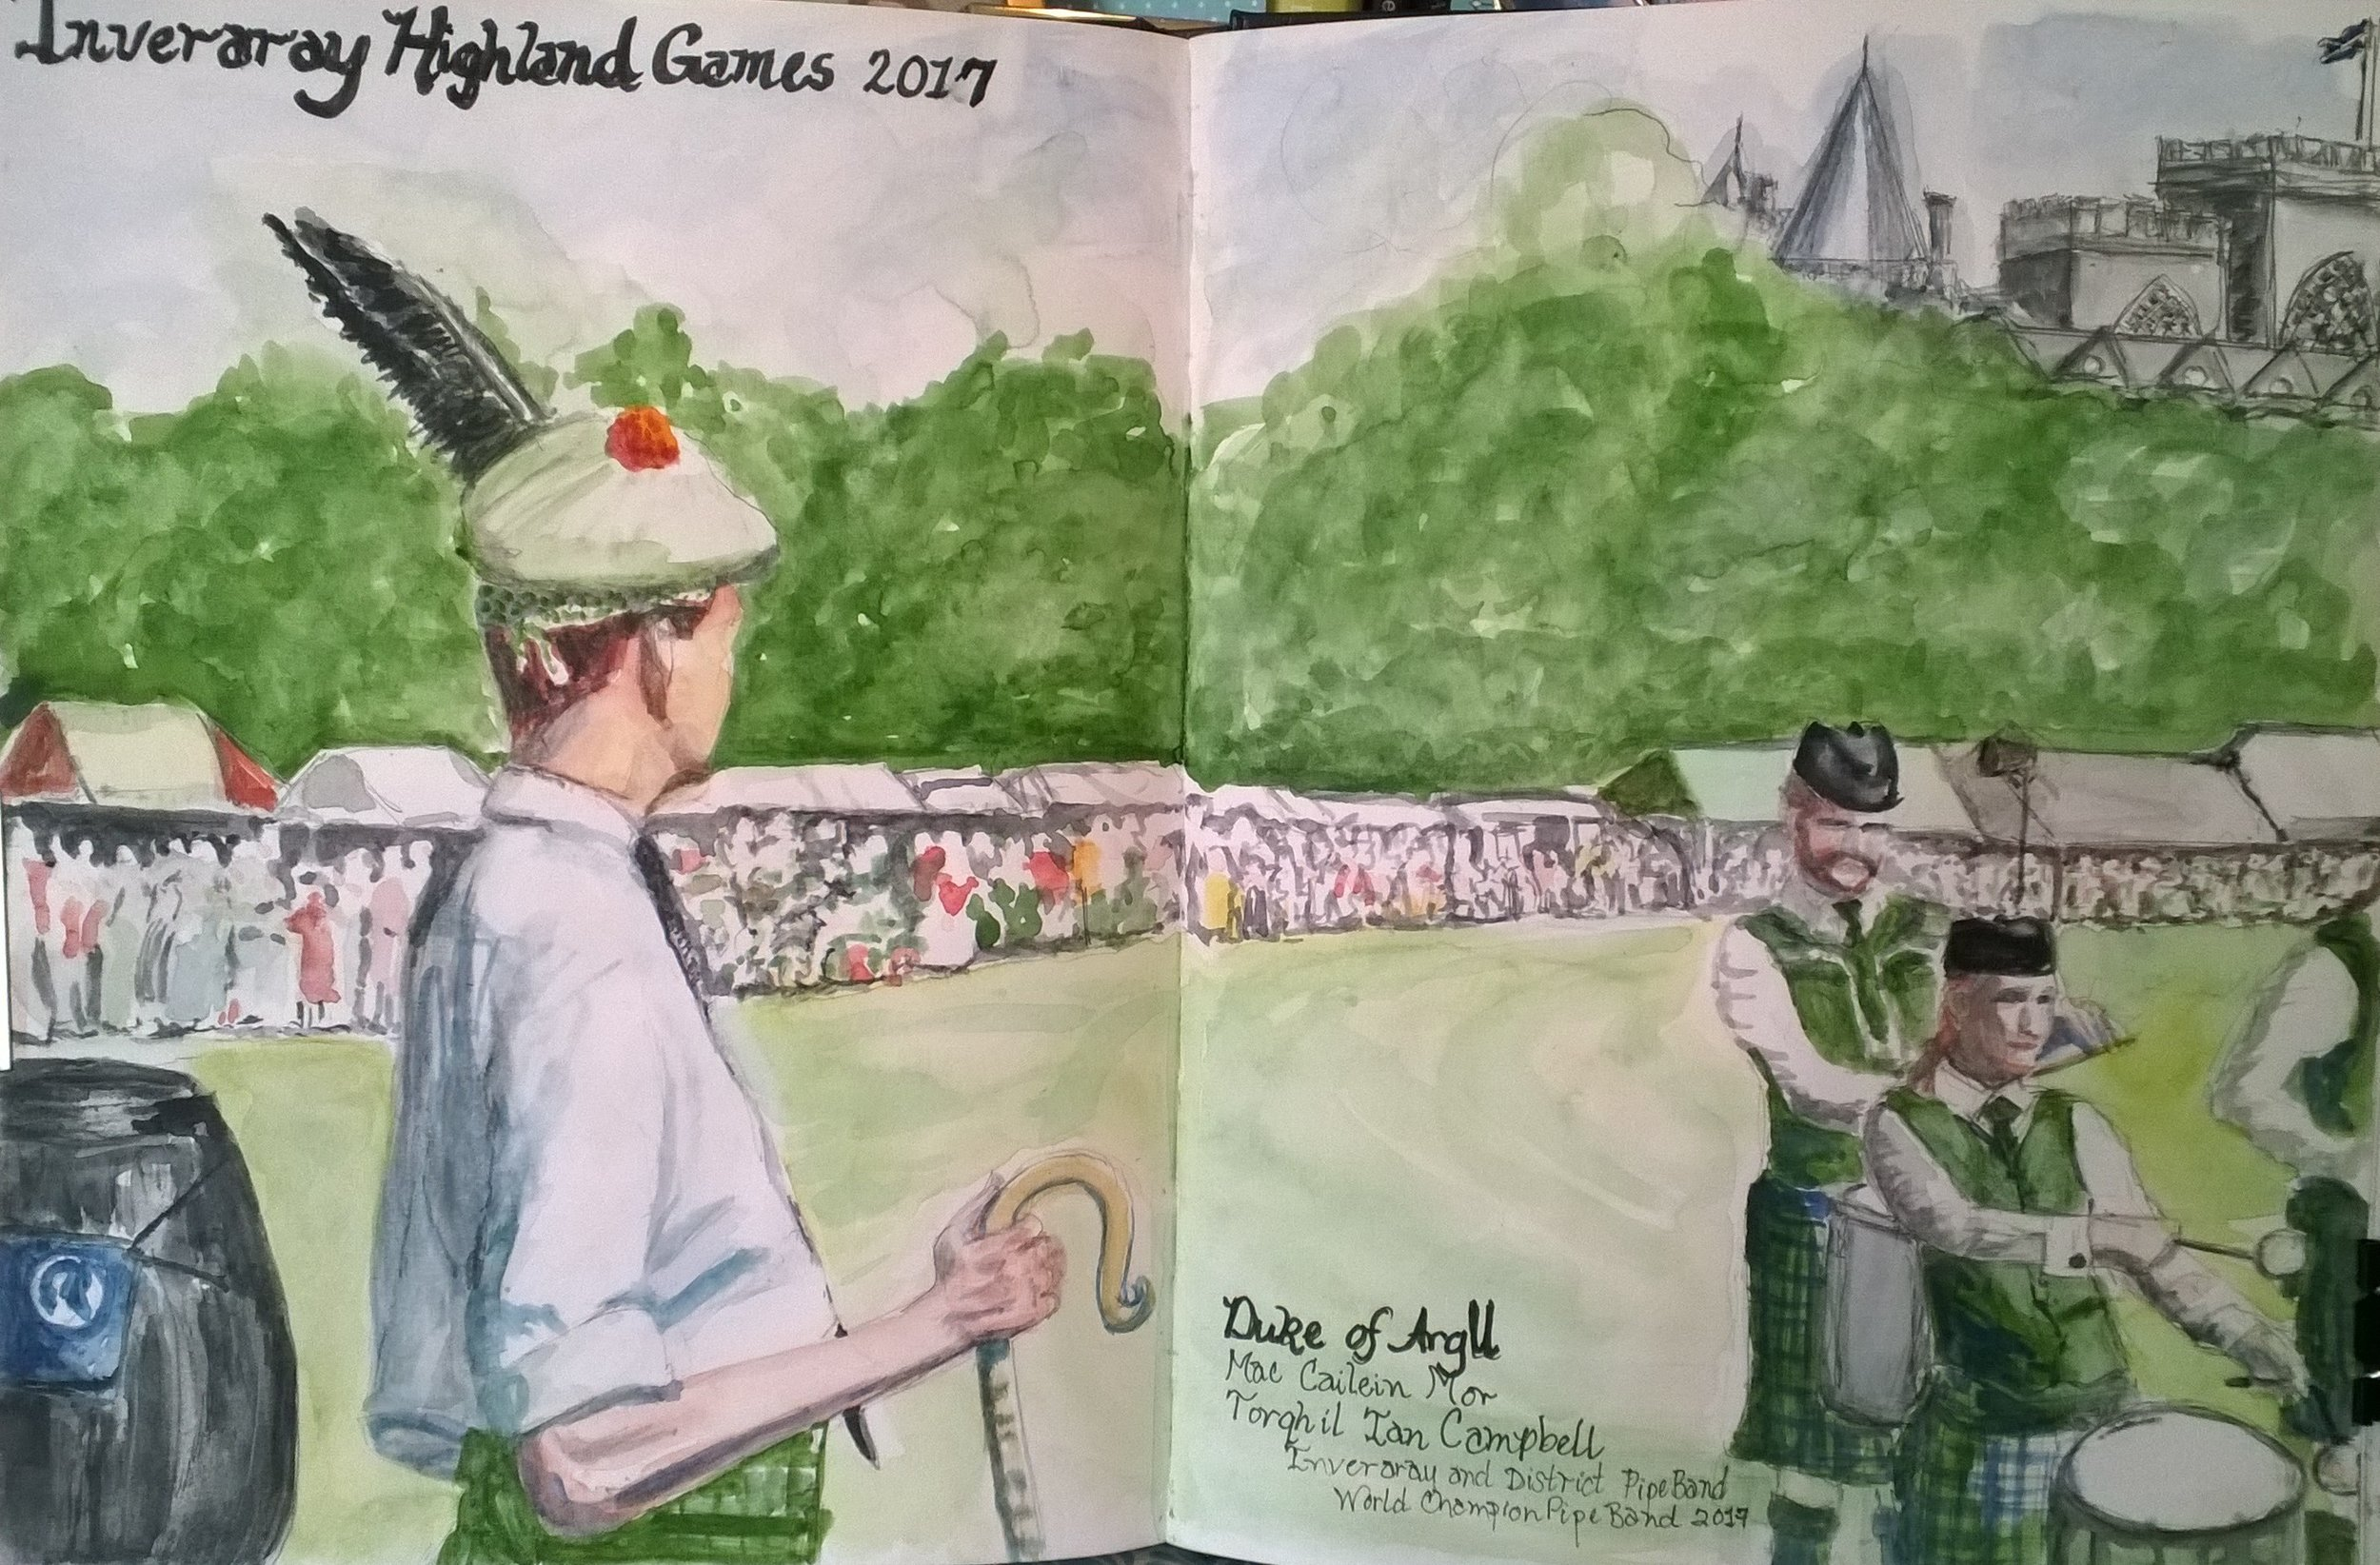 Inveraray Highland Games, Inveraray Castle, Scotland  Tuesday, July 18, 2017, we awoke in Oban, dawned our best Highland attire and headed for Inveraray. We gathered in Church Square at the head of Inveraray's main street. Excited crowds were gathering for the arrival of His Grace, the Duke of Argyll, Chief of Clan Campbell, his family, and the Inveraray & District Pipe Band (2017 World Champion). Our host, His Grace, provided us with shortbread and wee drams of Clan Campbell Scotch Whiskey. We all had the honor of meeting the His Grace and his children. What a moment that was...unforgettable! We then fell in behind the pipe band, the Duke, and his three children, Lord Archie, Lord Rory, and Lady Charlotte. We paraded through town to the park on the grounds of Inveraray Castle.  When we arrived at the park, we were special guest of His Grace, the Duke of Argyll, and were hosted in the Sponsors' Tent. There we met Her Grace, the Duchess of Argyll! The Inveraray Highland Games included several piping and highland dancing competitions, track and filed, heavy events, wrestling, cycling, and the World Champion Caber Championship. There were great food tents (I had a delicious venison burger), and vendors' tents with beautiful highland crafts.I joined the Friends of the Argyll Papers (which benefits the preservation of the Argyll Archives) at their tent.  My Campbell Cousin, Marie, her husband, Don, and I took a second tour of Inveraray Castle. The guides gave us private access to the main rooms as we soaked in the gorgeous ambiance, and incredible history of our Clan Campbell castle! This day will always be remembered as a day of family, honor, and celebration for me! Thank you, Your Graces,Duke and Duchess of Argyll for one of the most amazing days of my life!